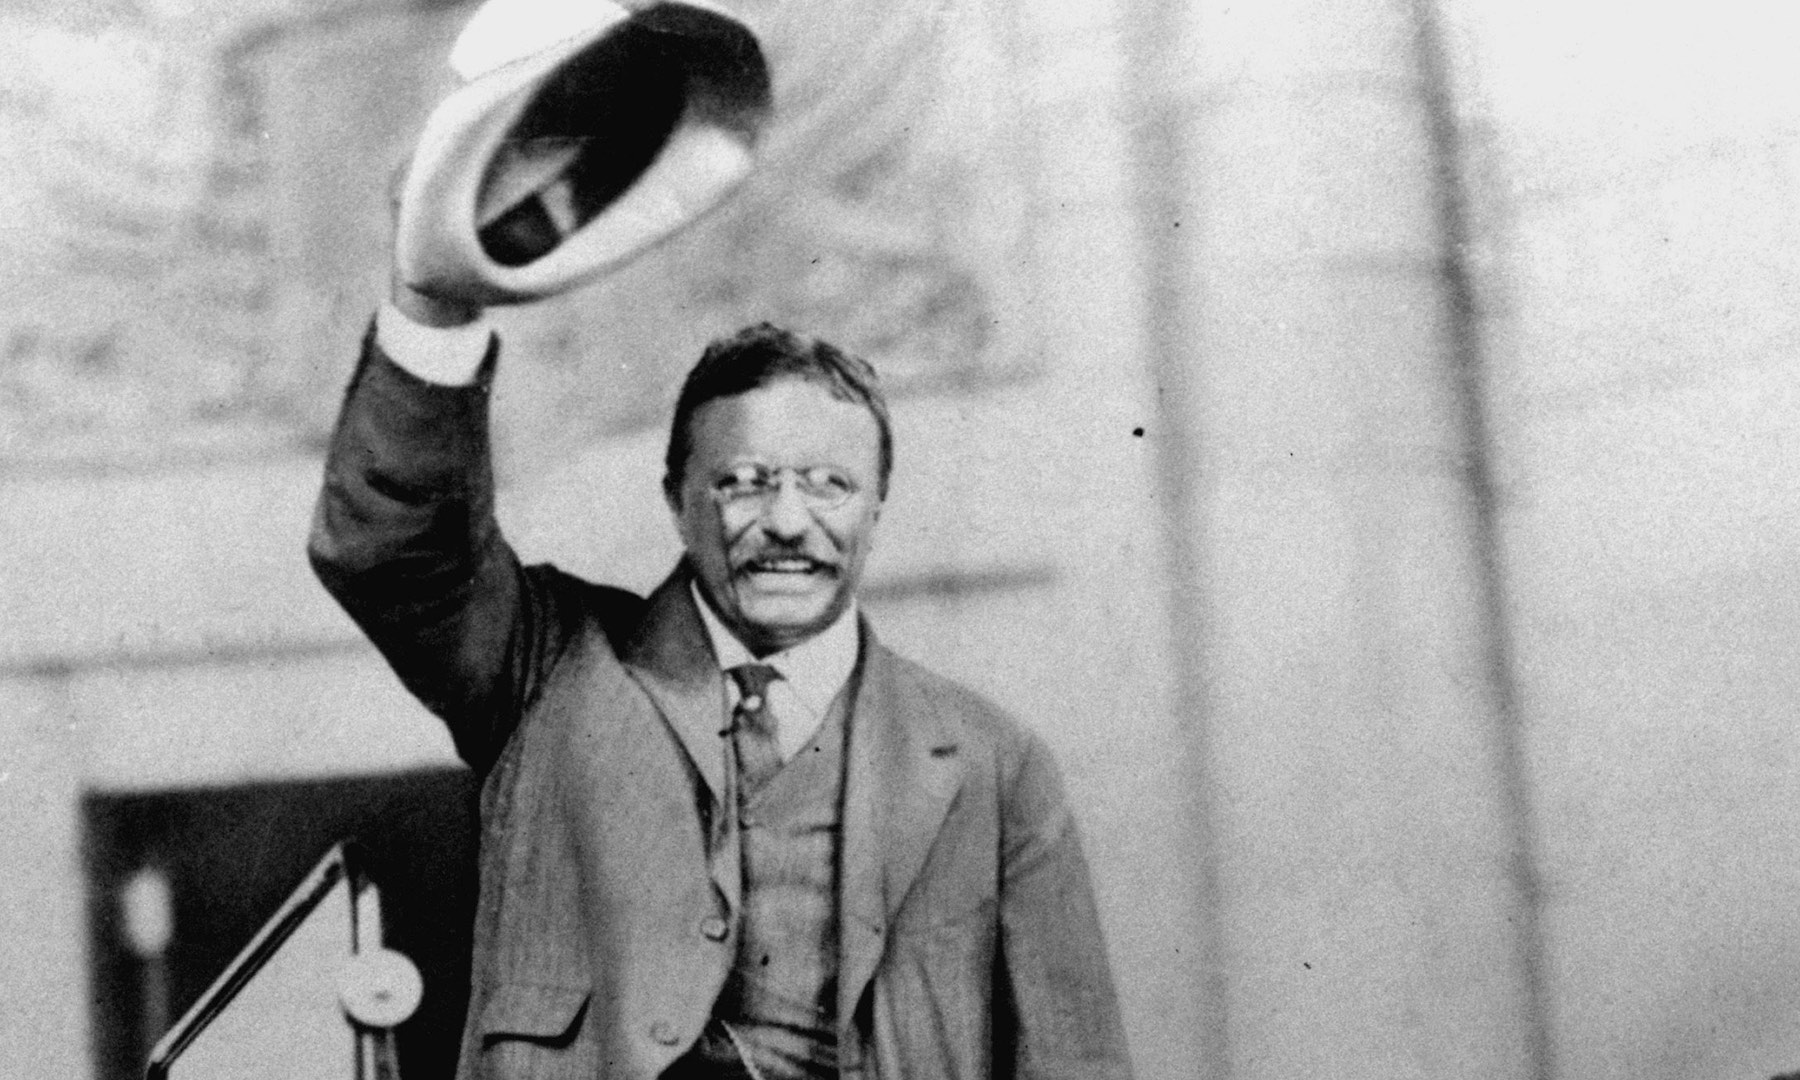 Roosevelt campaigning for president in 1904